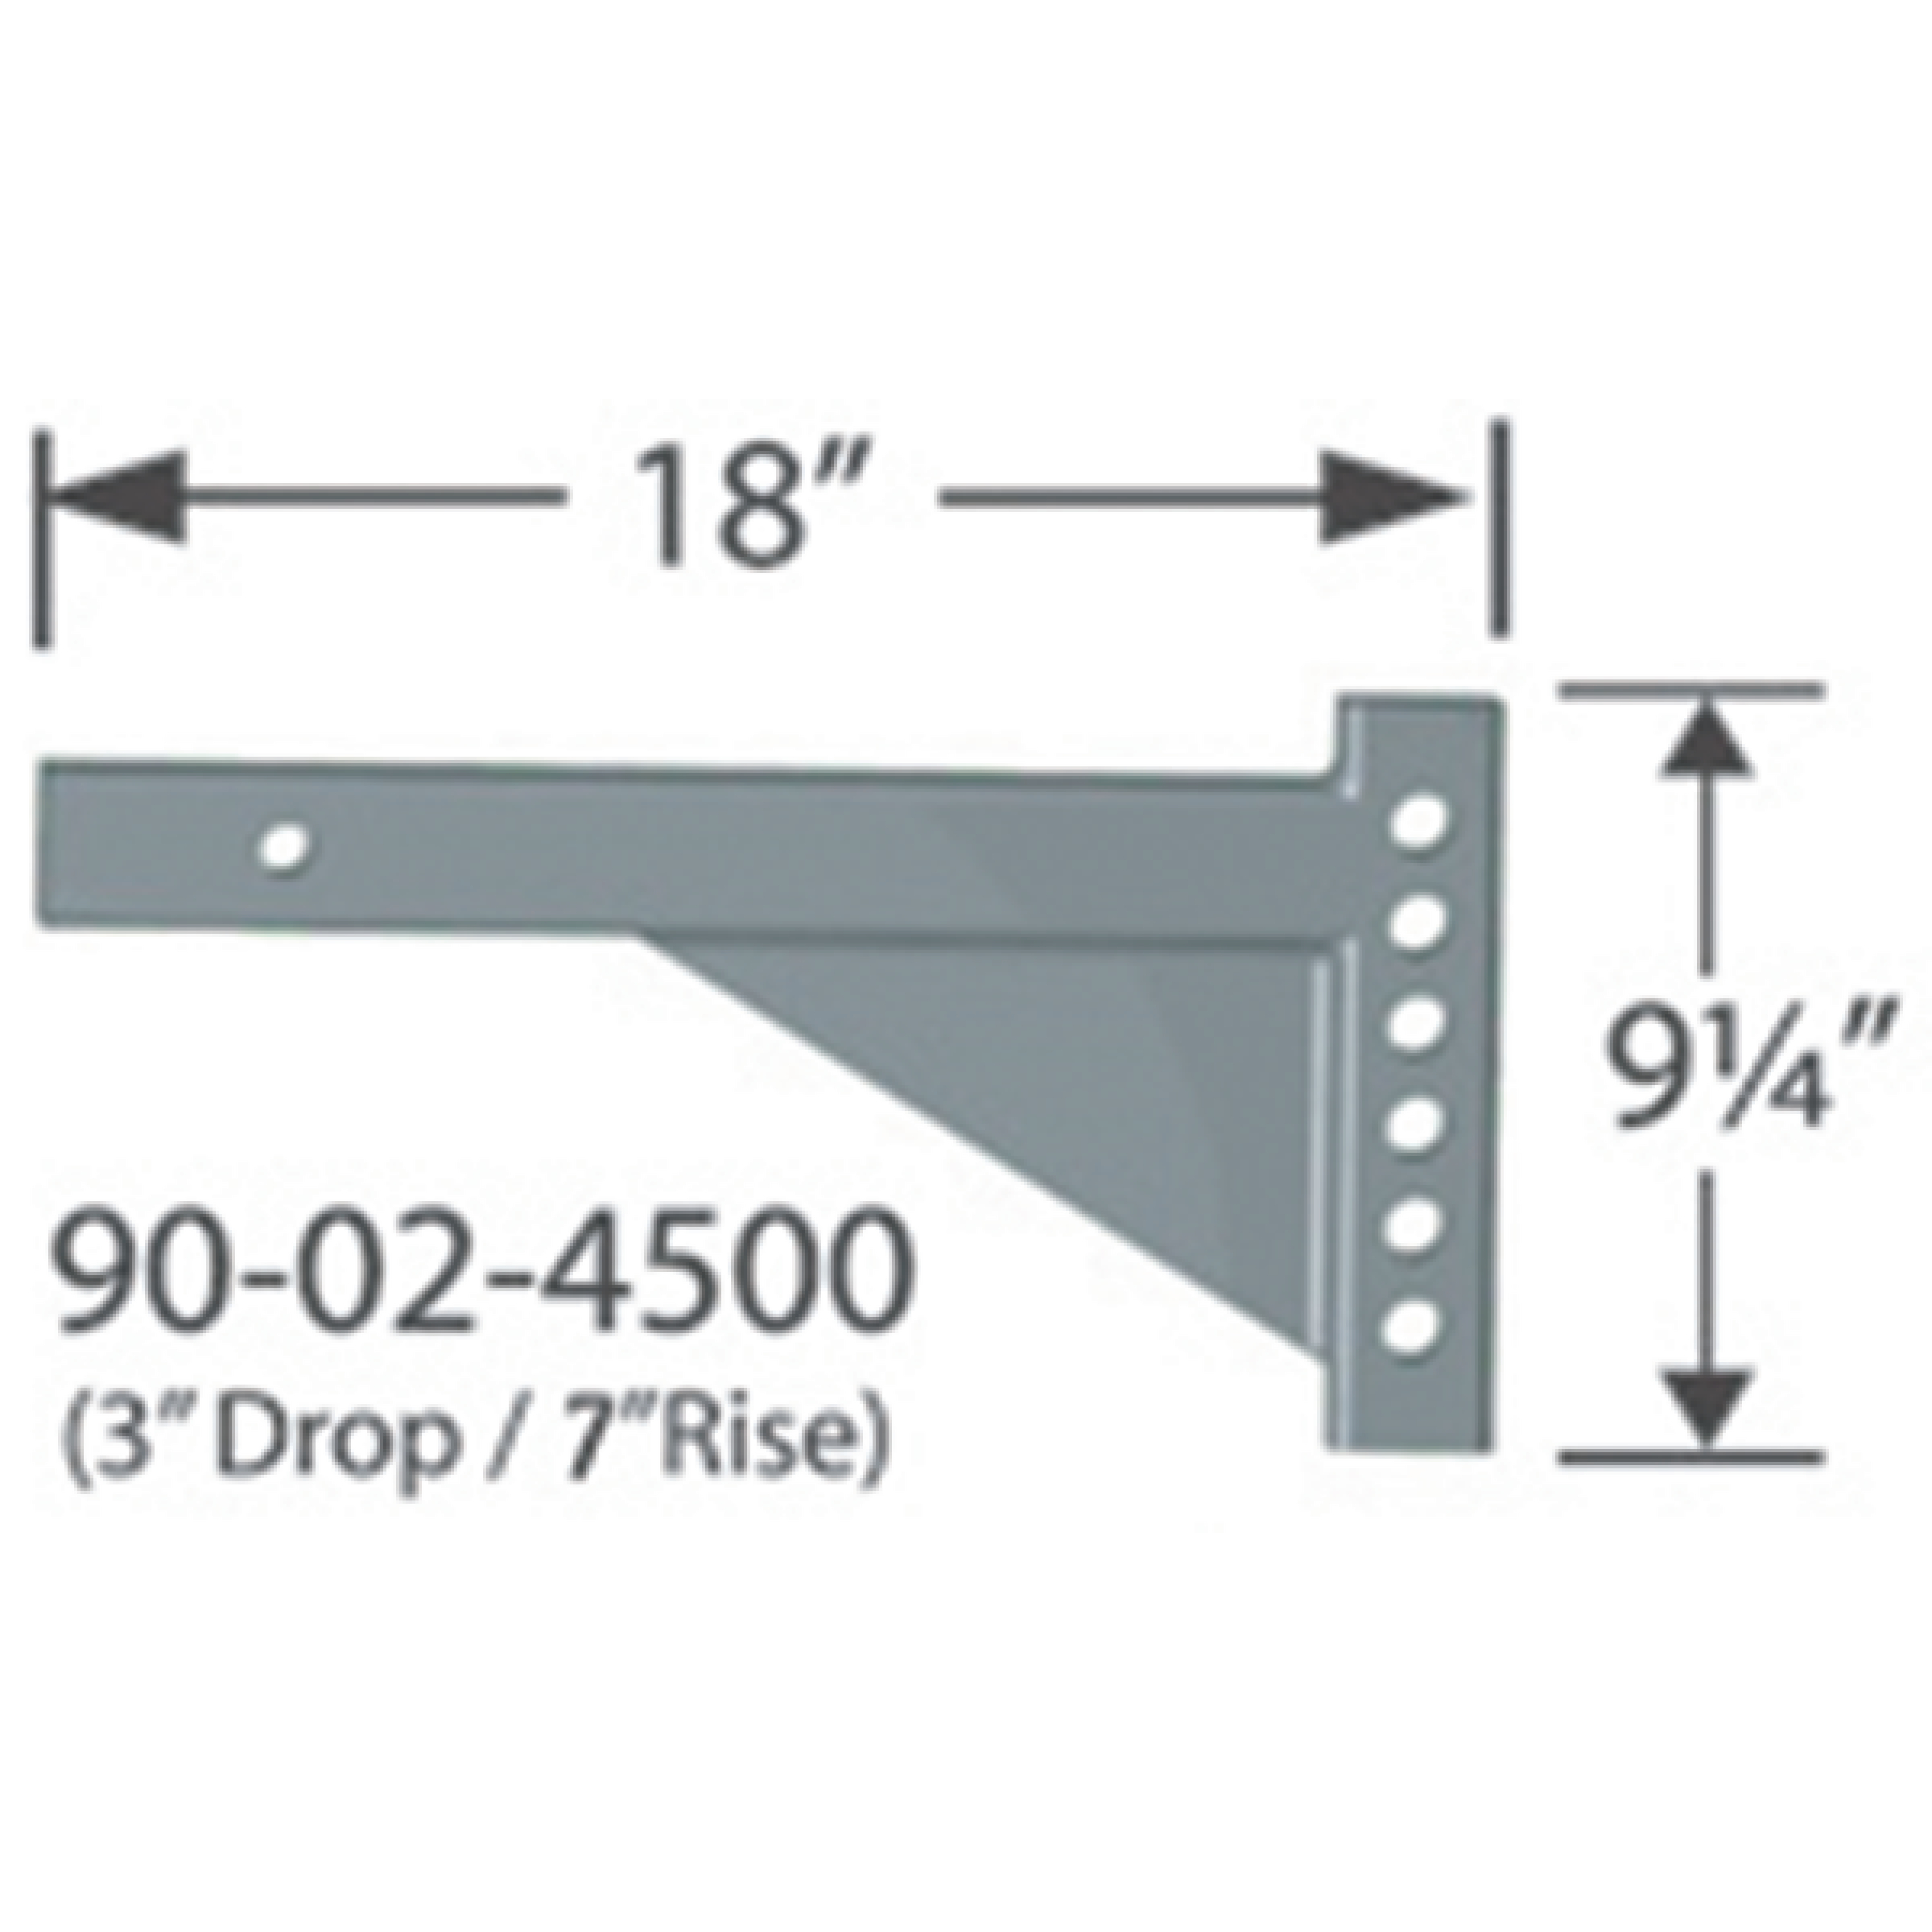 "Progress Mfg 90-02-4500 Equal-i-zer 2"" Adjustable RV Shank - 3"" Drop, 7"" Rise & 18"" Length (T18)"